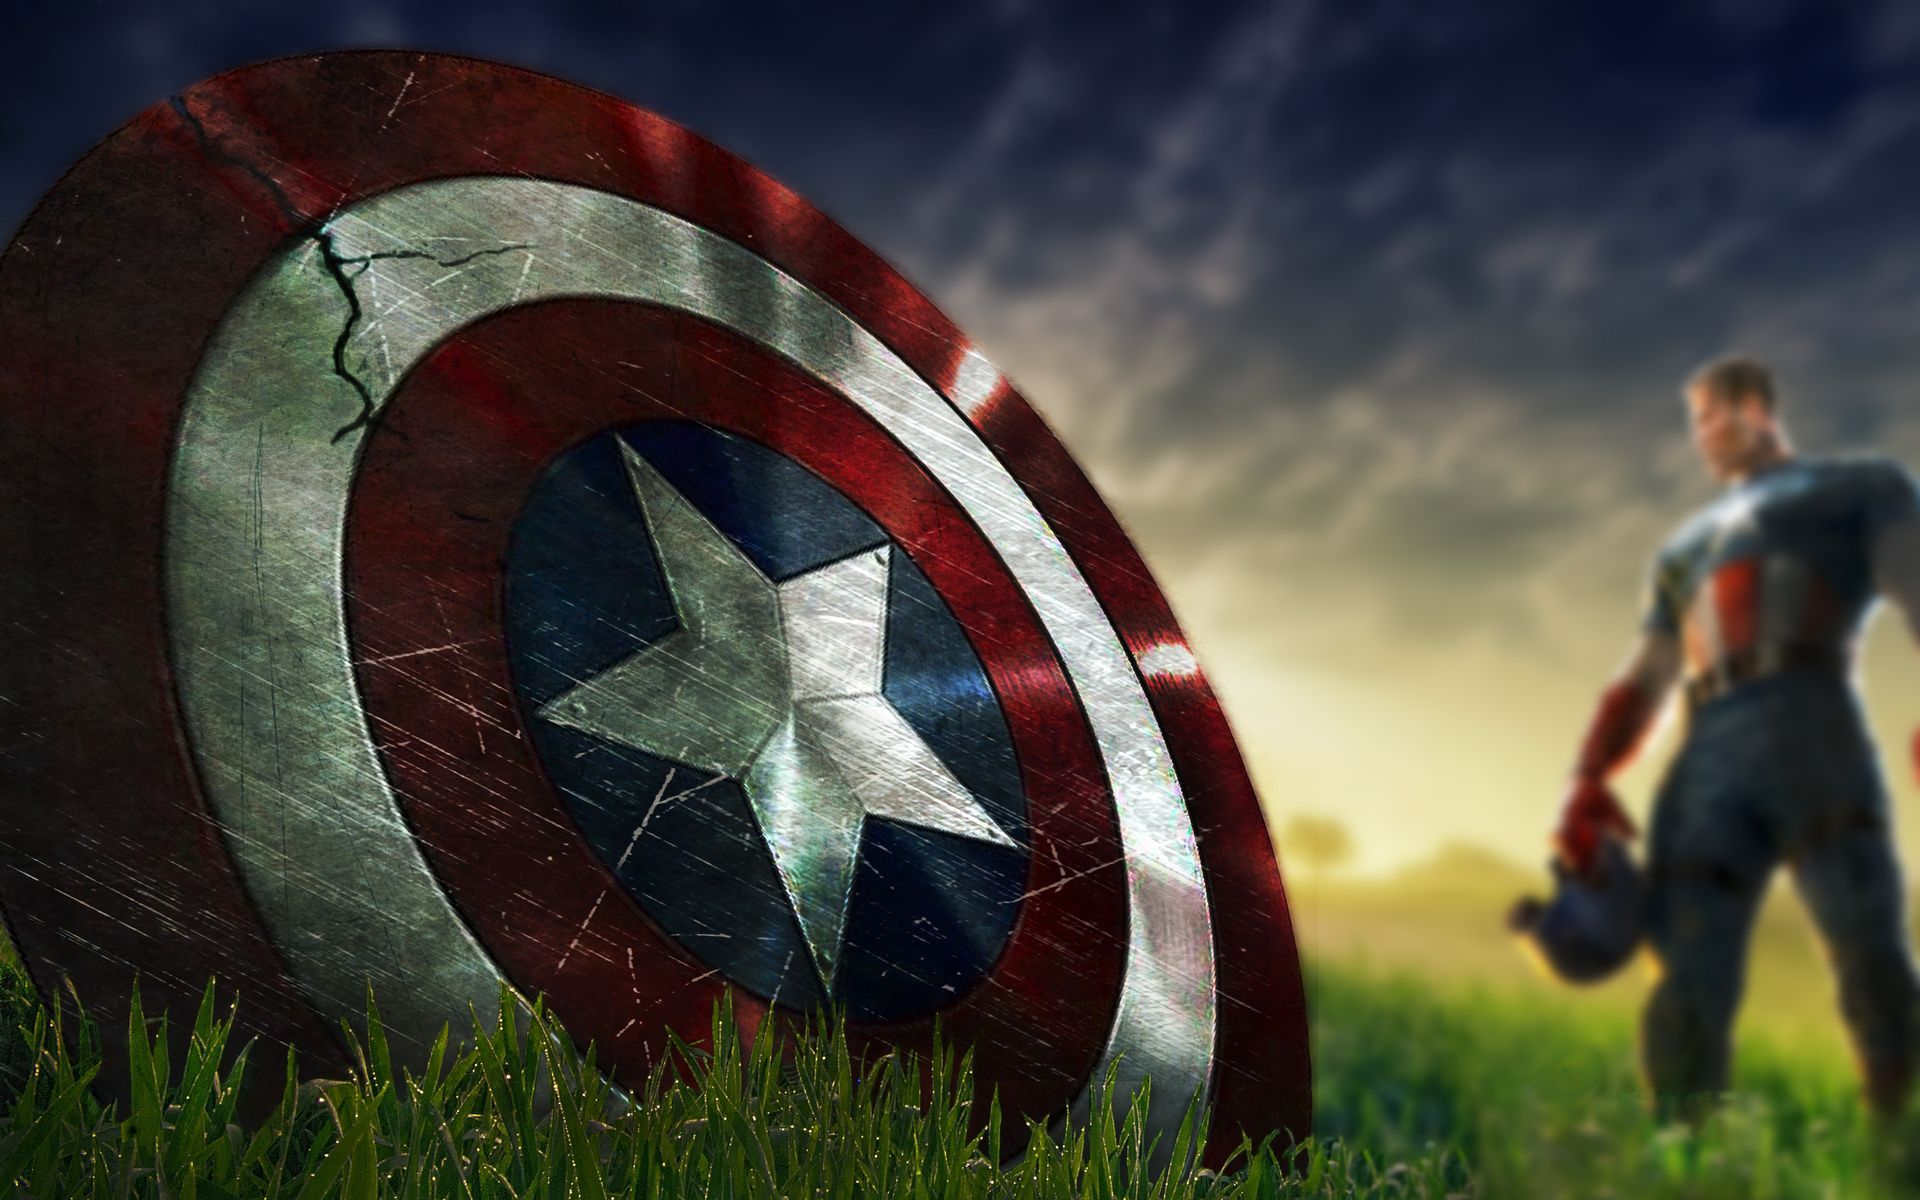 Captain america wallpapers top free captain america - Captain america screensaver download ...